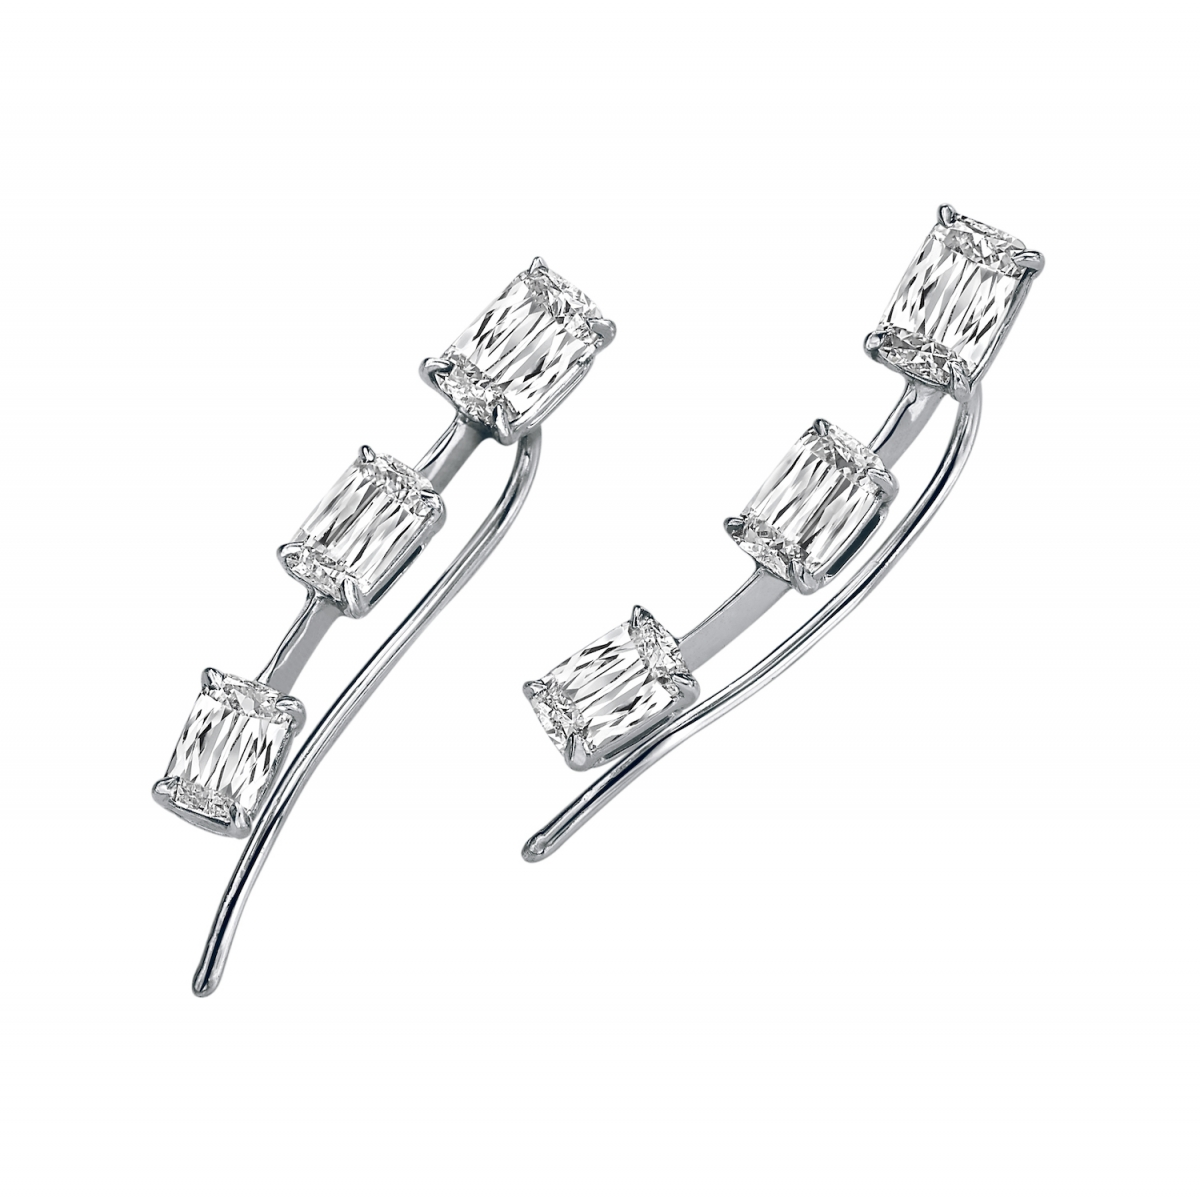 ASHOKA Diamond Ear Cuffs